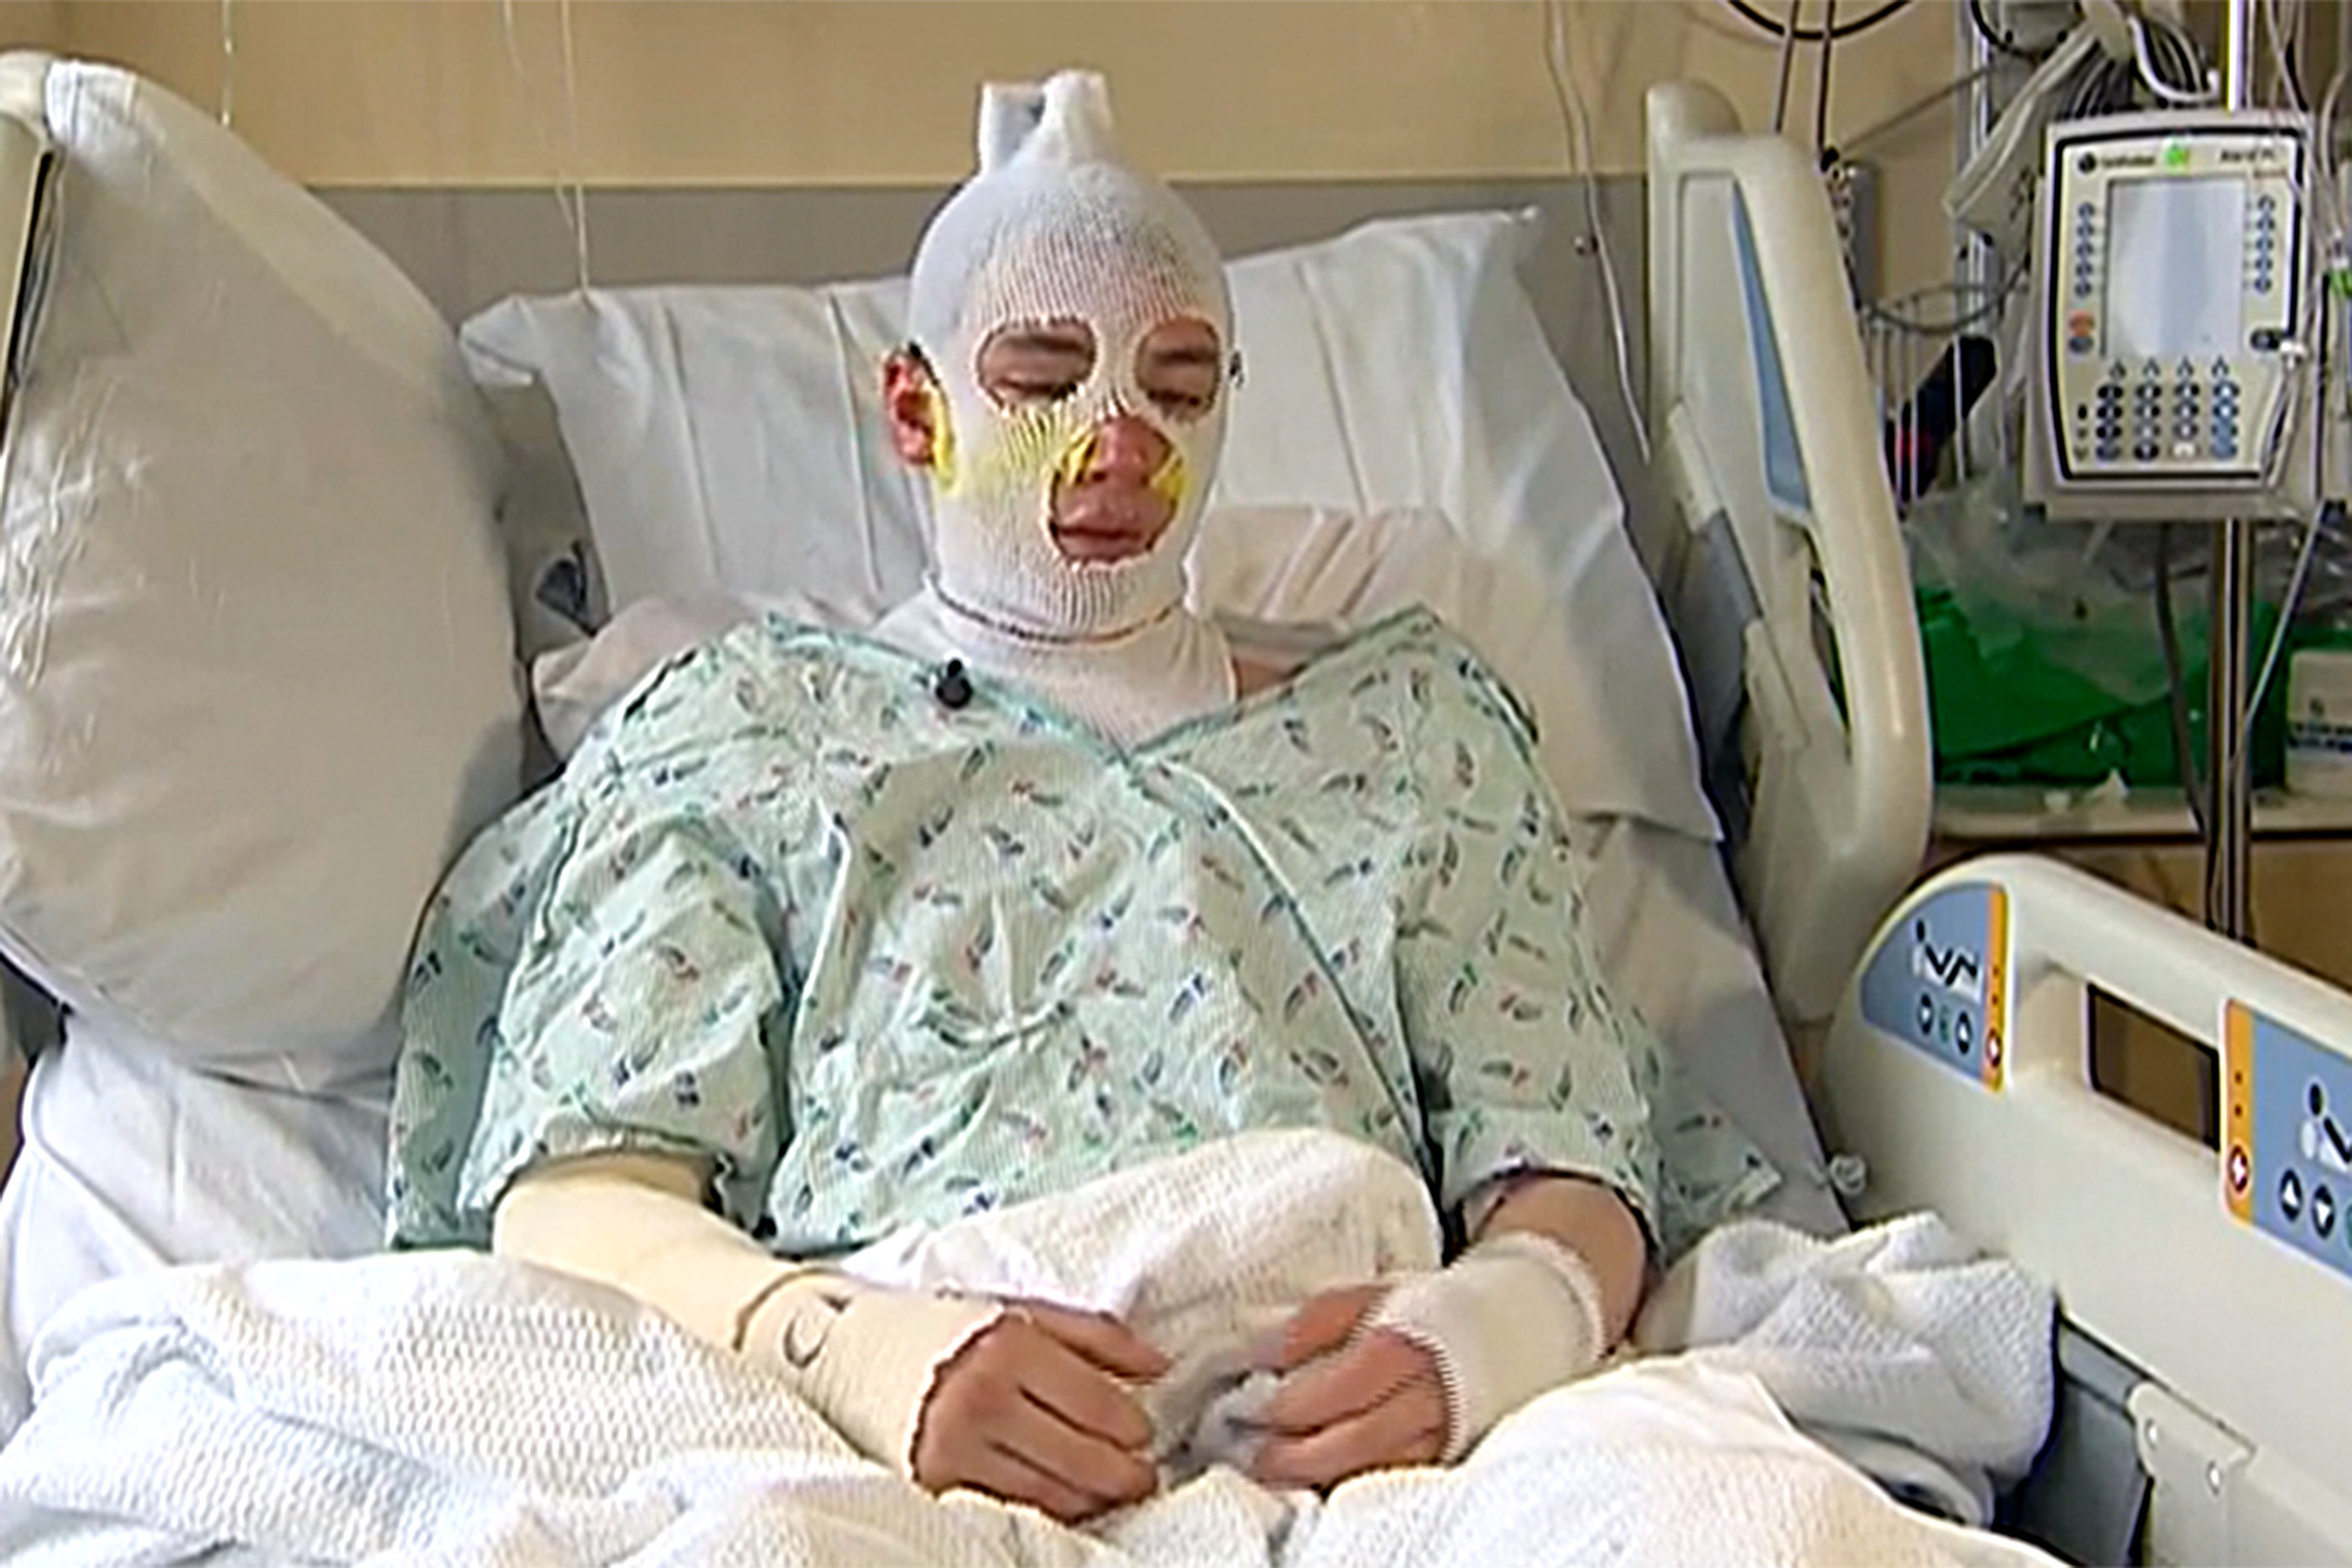 Uncle Derrick Byrd In Hospital Bed with Bandage Wrapped on Face and Body